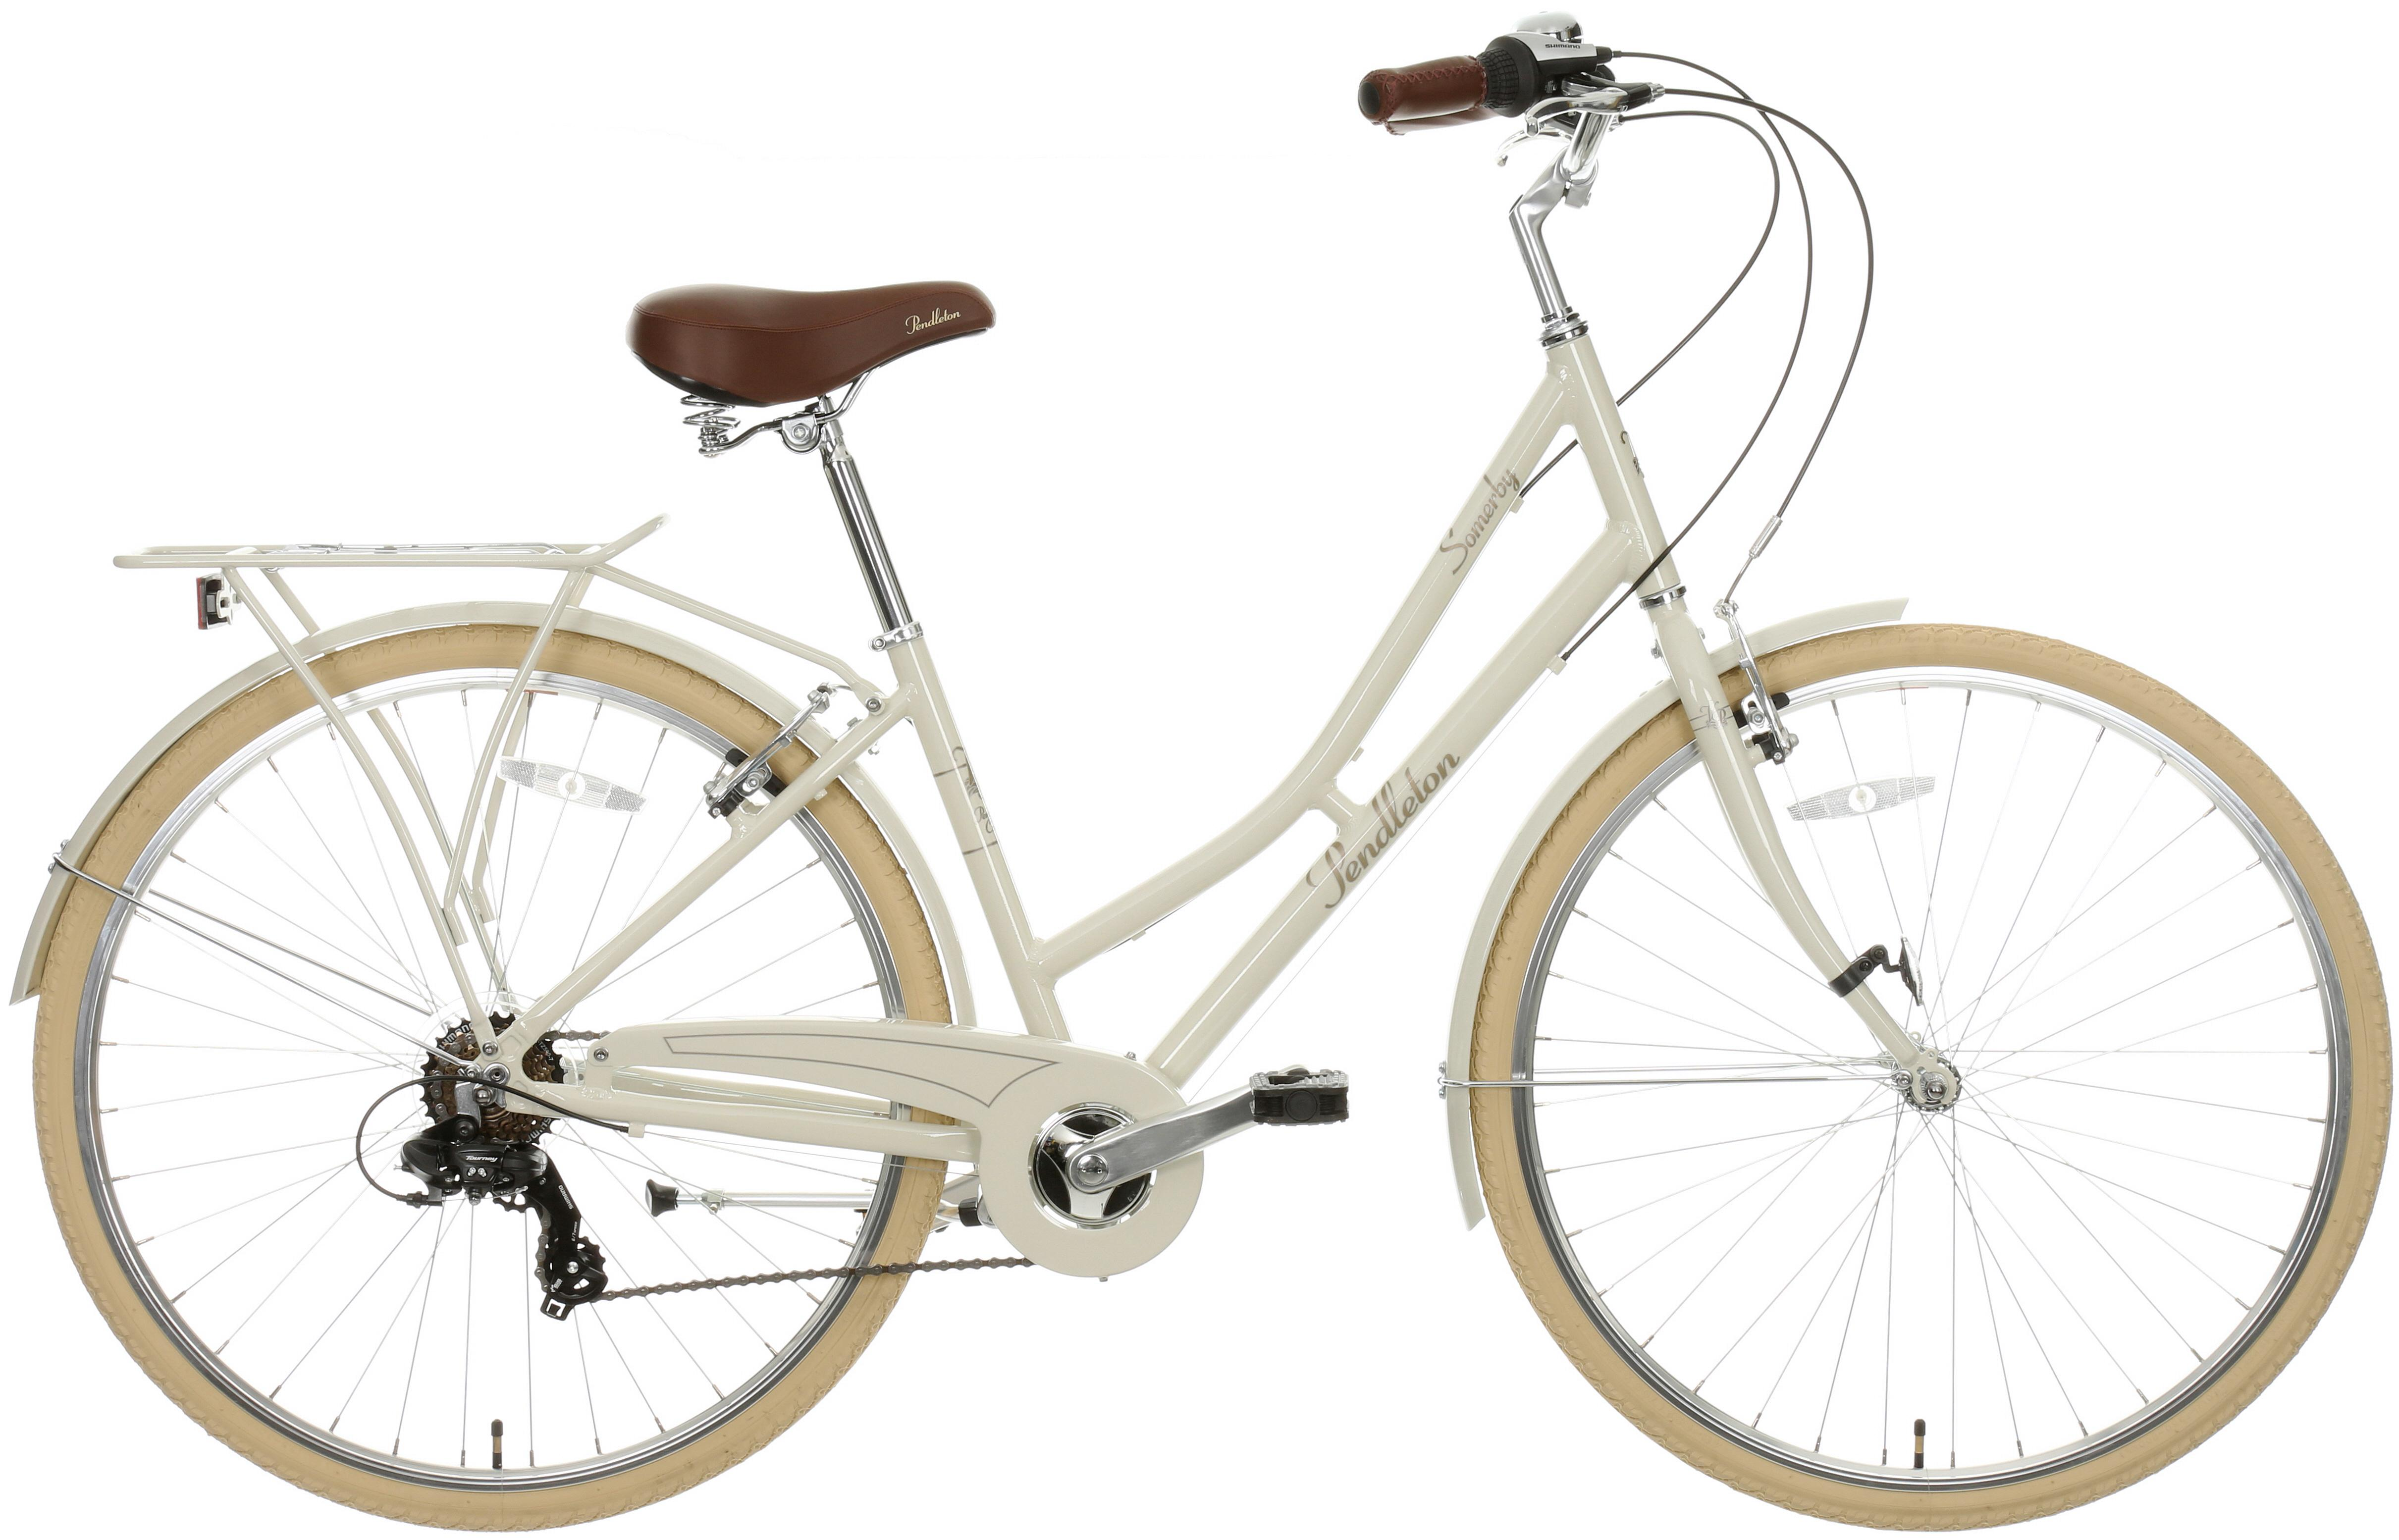 Pendleton Somerby Hybrid Bike - Bone 19 inch